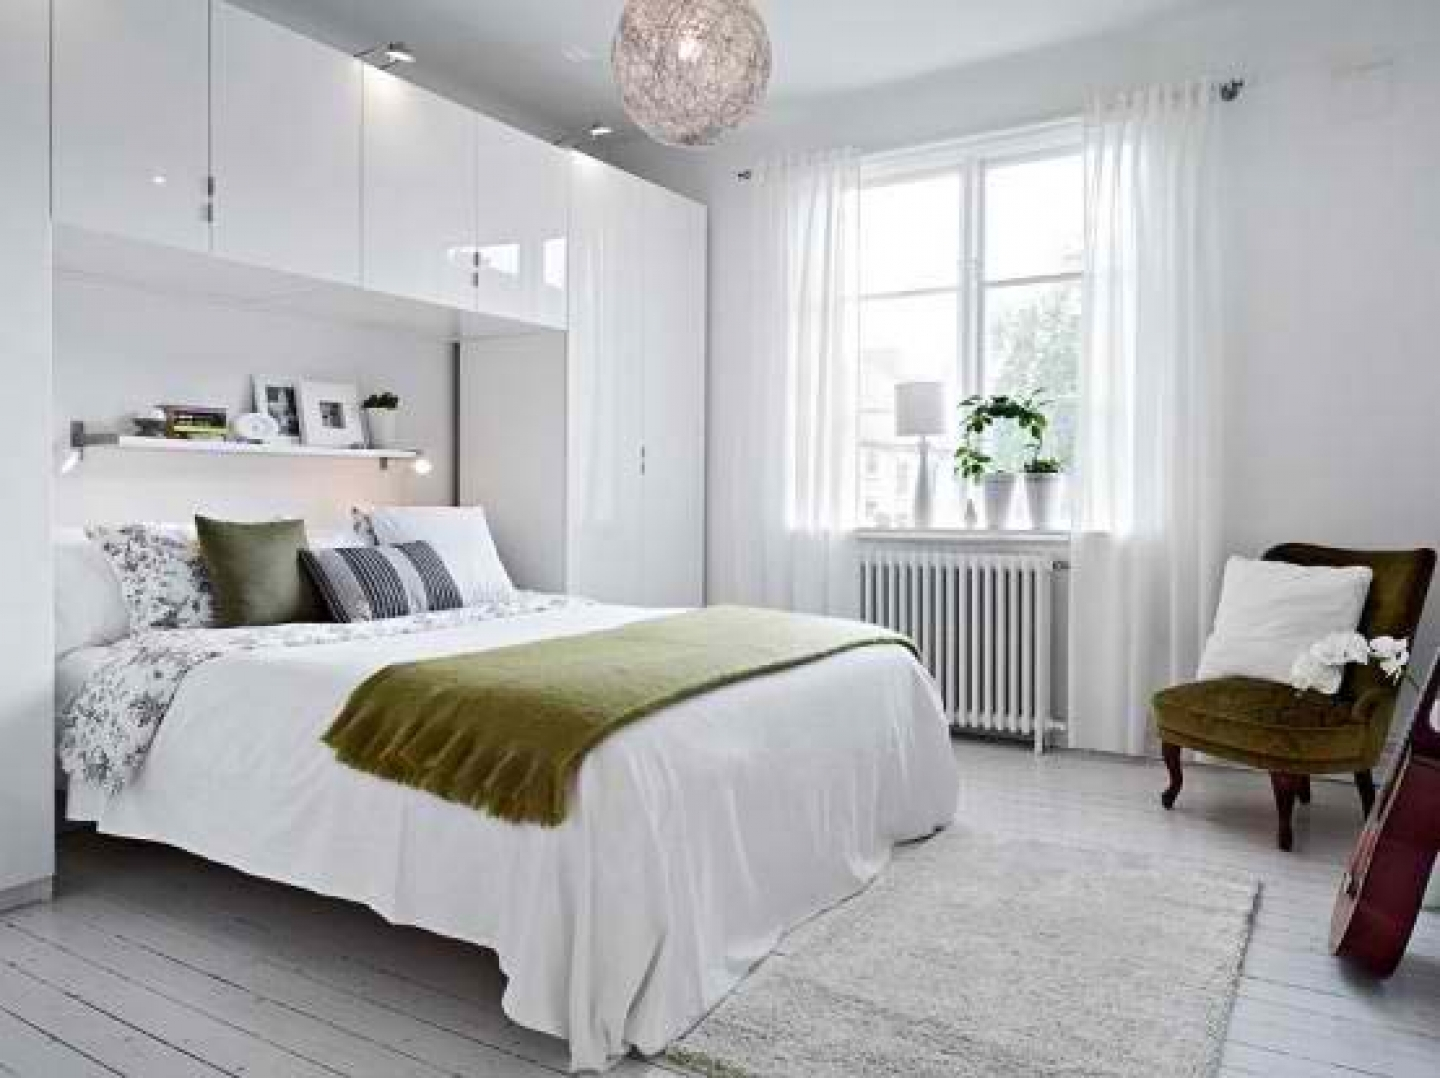 10 Most Popular Small Apartment Bedroom Decorating Ideas amazing of best finest wonderful looking apartment bedroo 6442 2021